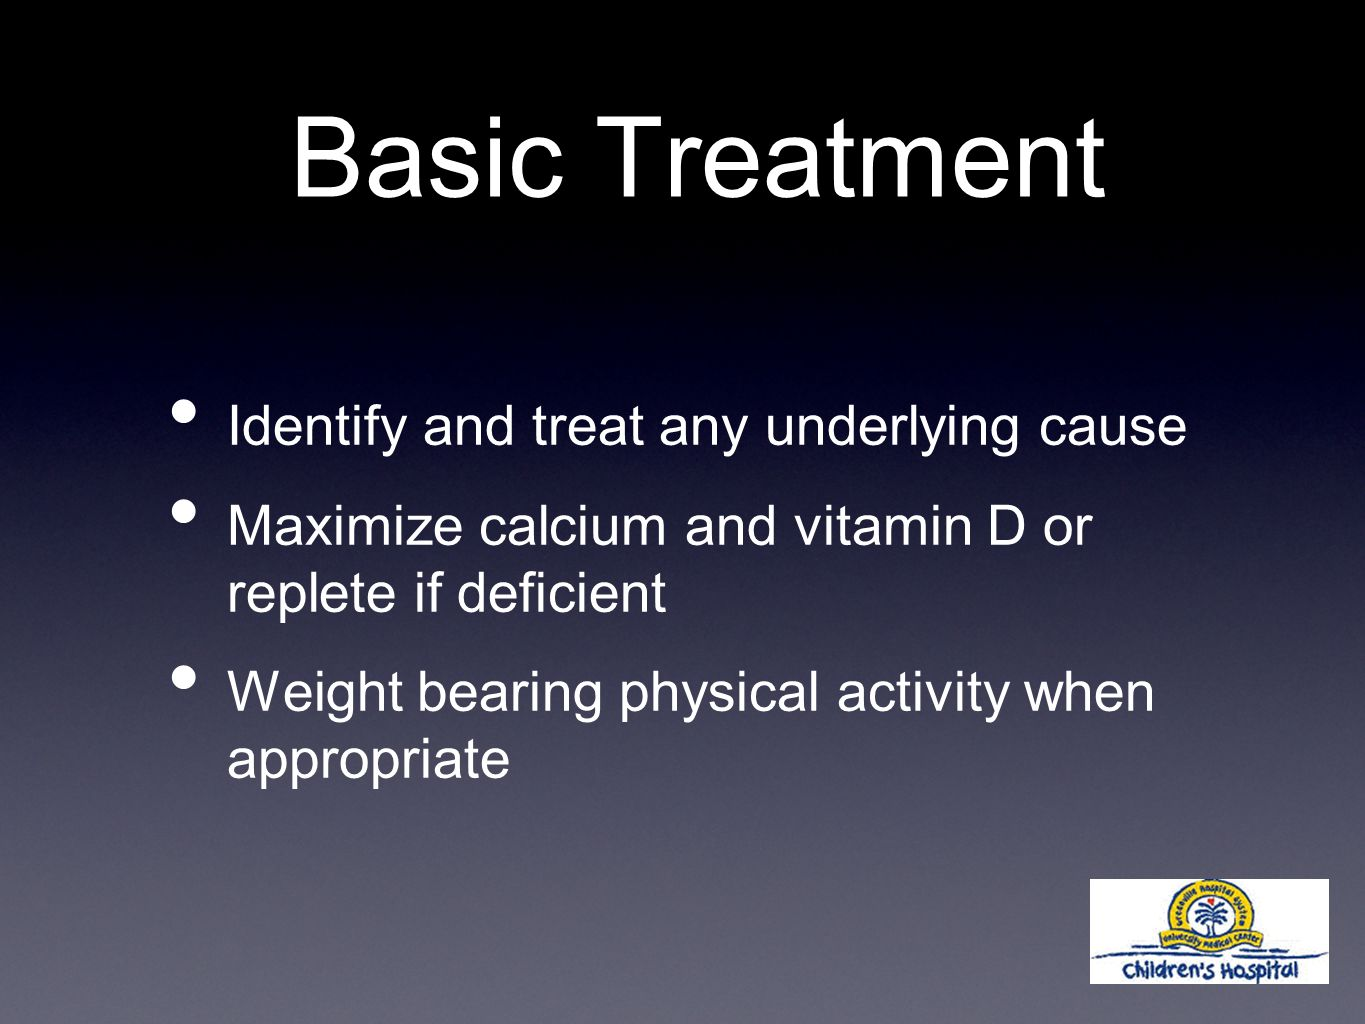 Basic Treatment Identify and treat any underlying cause Maximize calcium and vitamin D or replete if deficient Weight bearing physical activity when appropriate